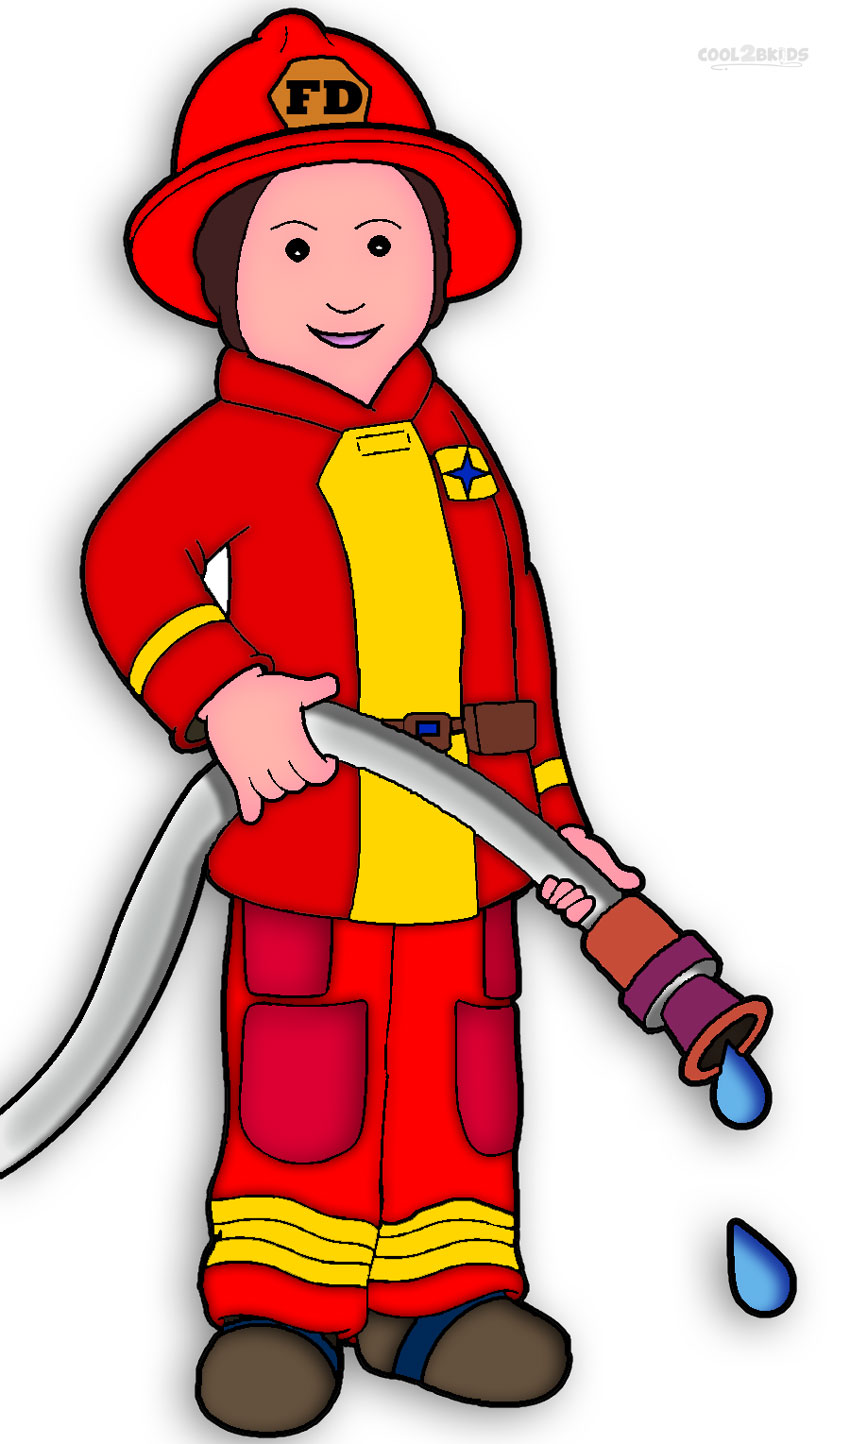 Clip Art Fireman Clip Art fireman tools clipart kid free printable coloring pages cool2bkids